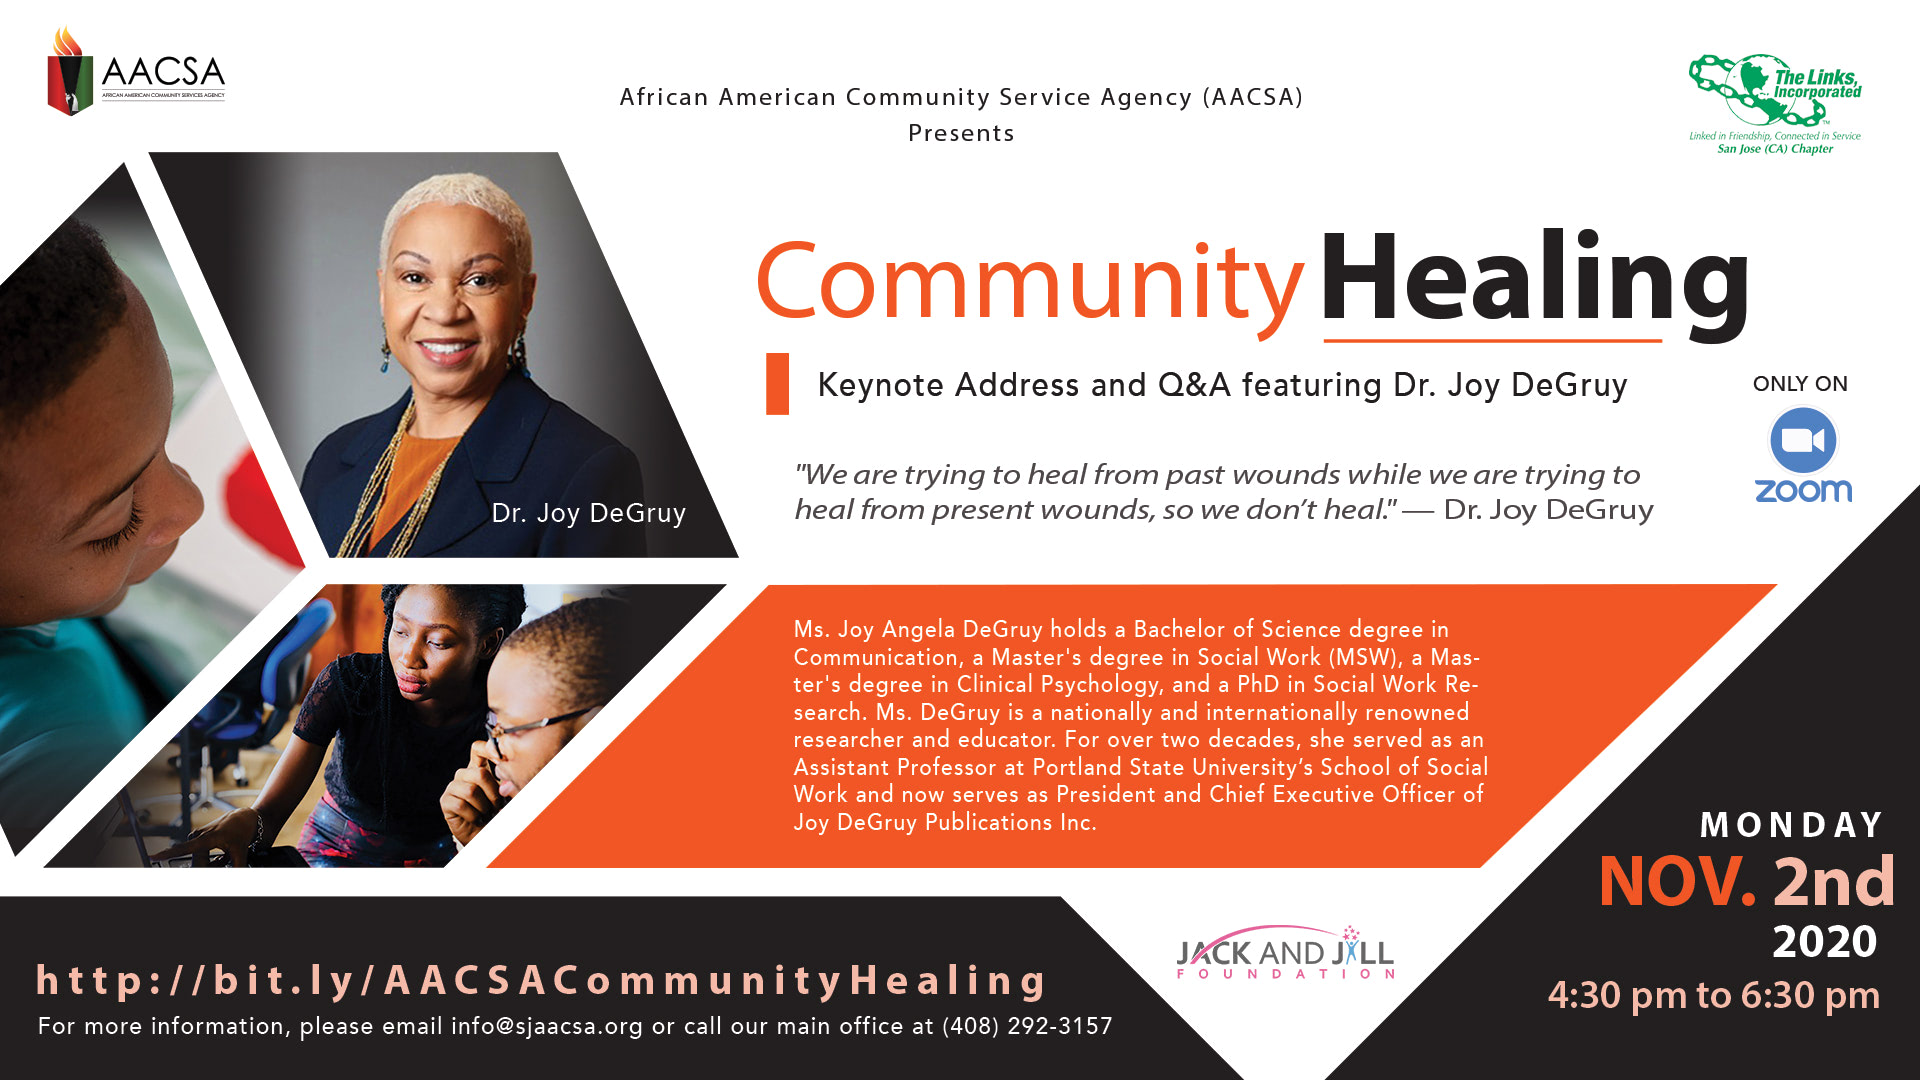 Community Healing event featuring Dr. Joy DeGruy